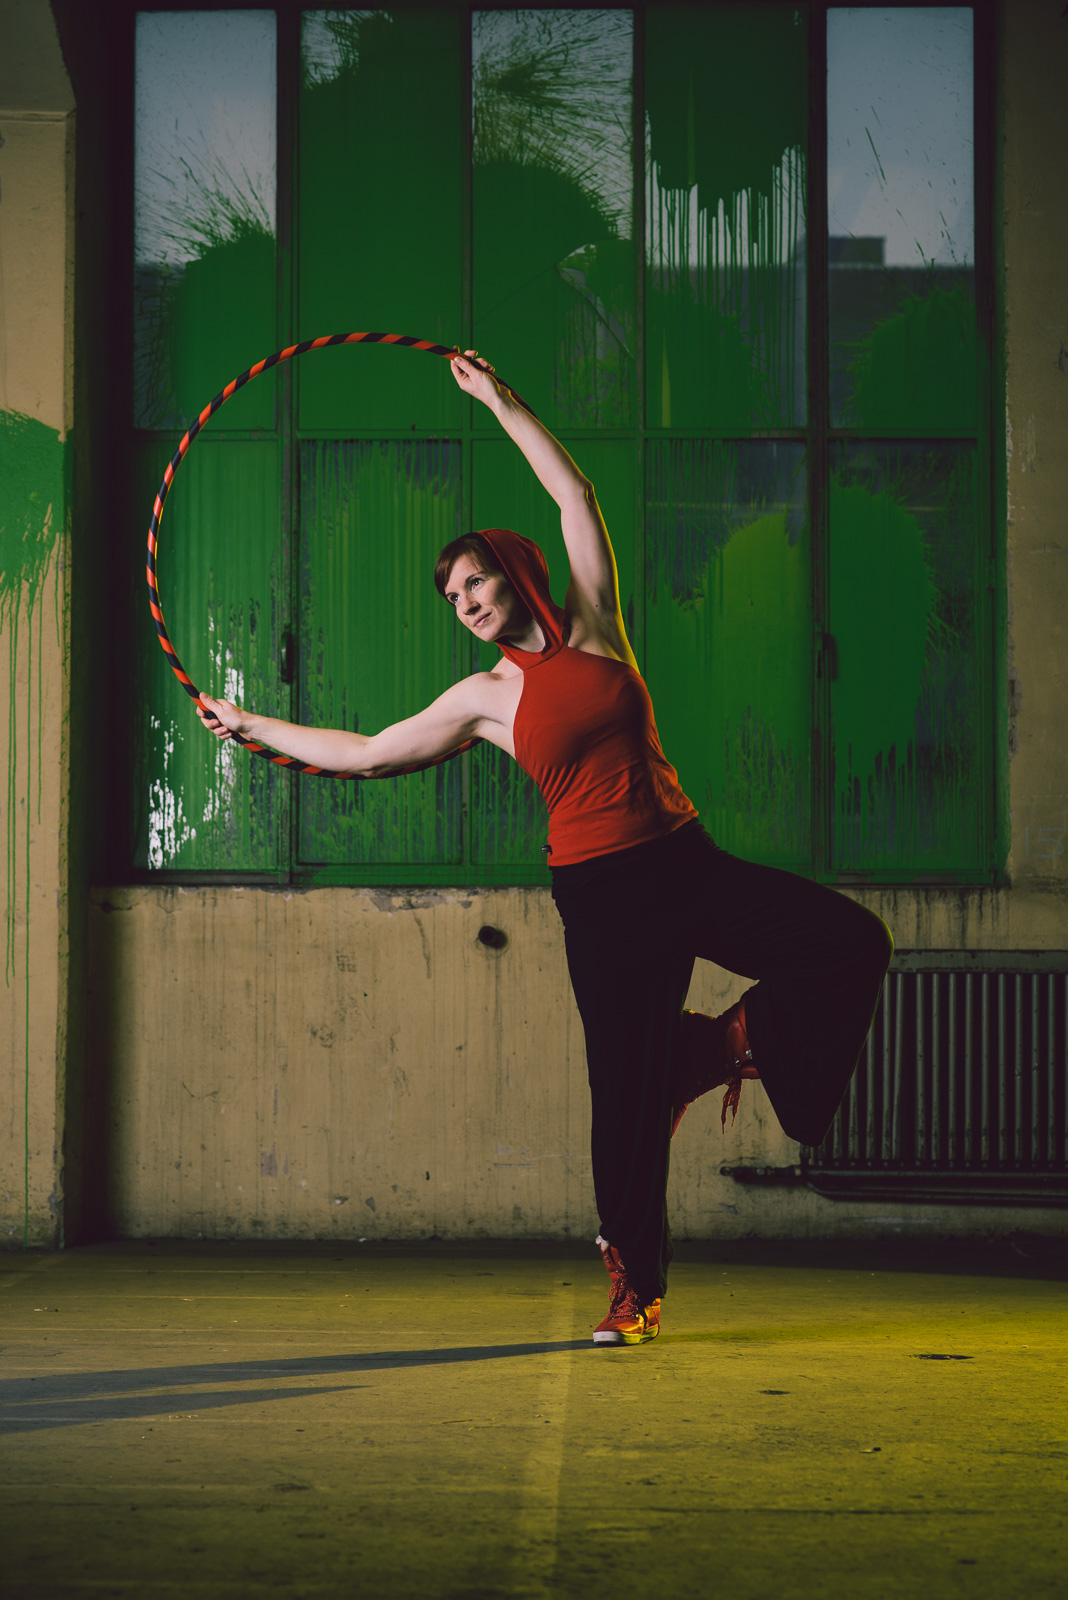 hula-hoop-shootingLY8_0869